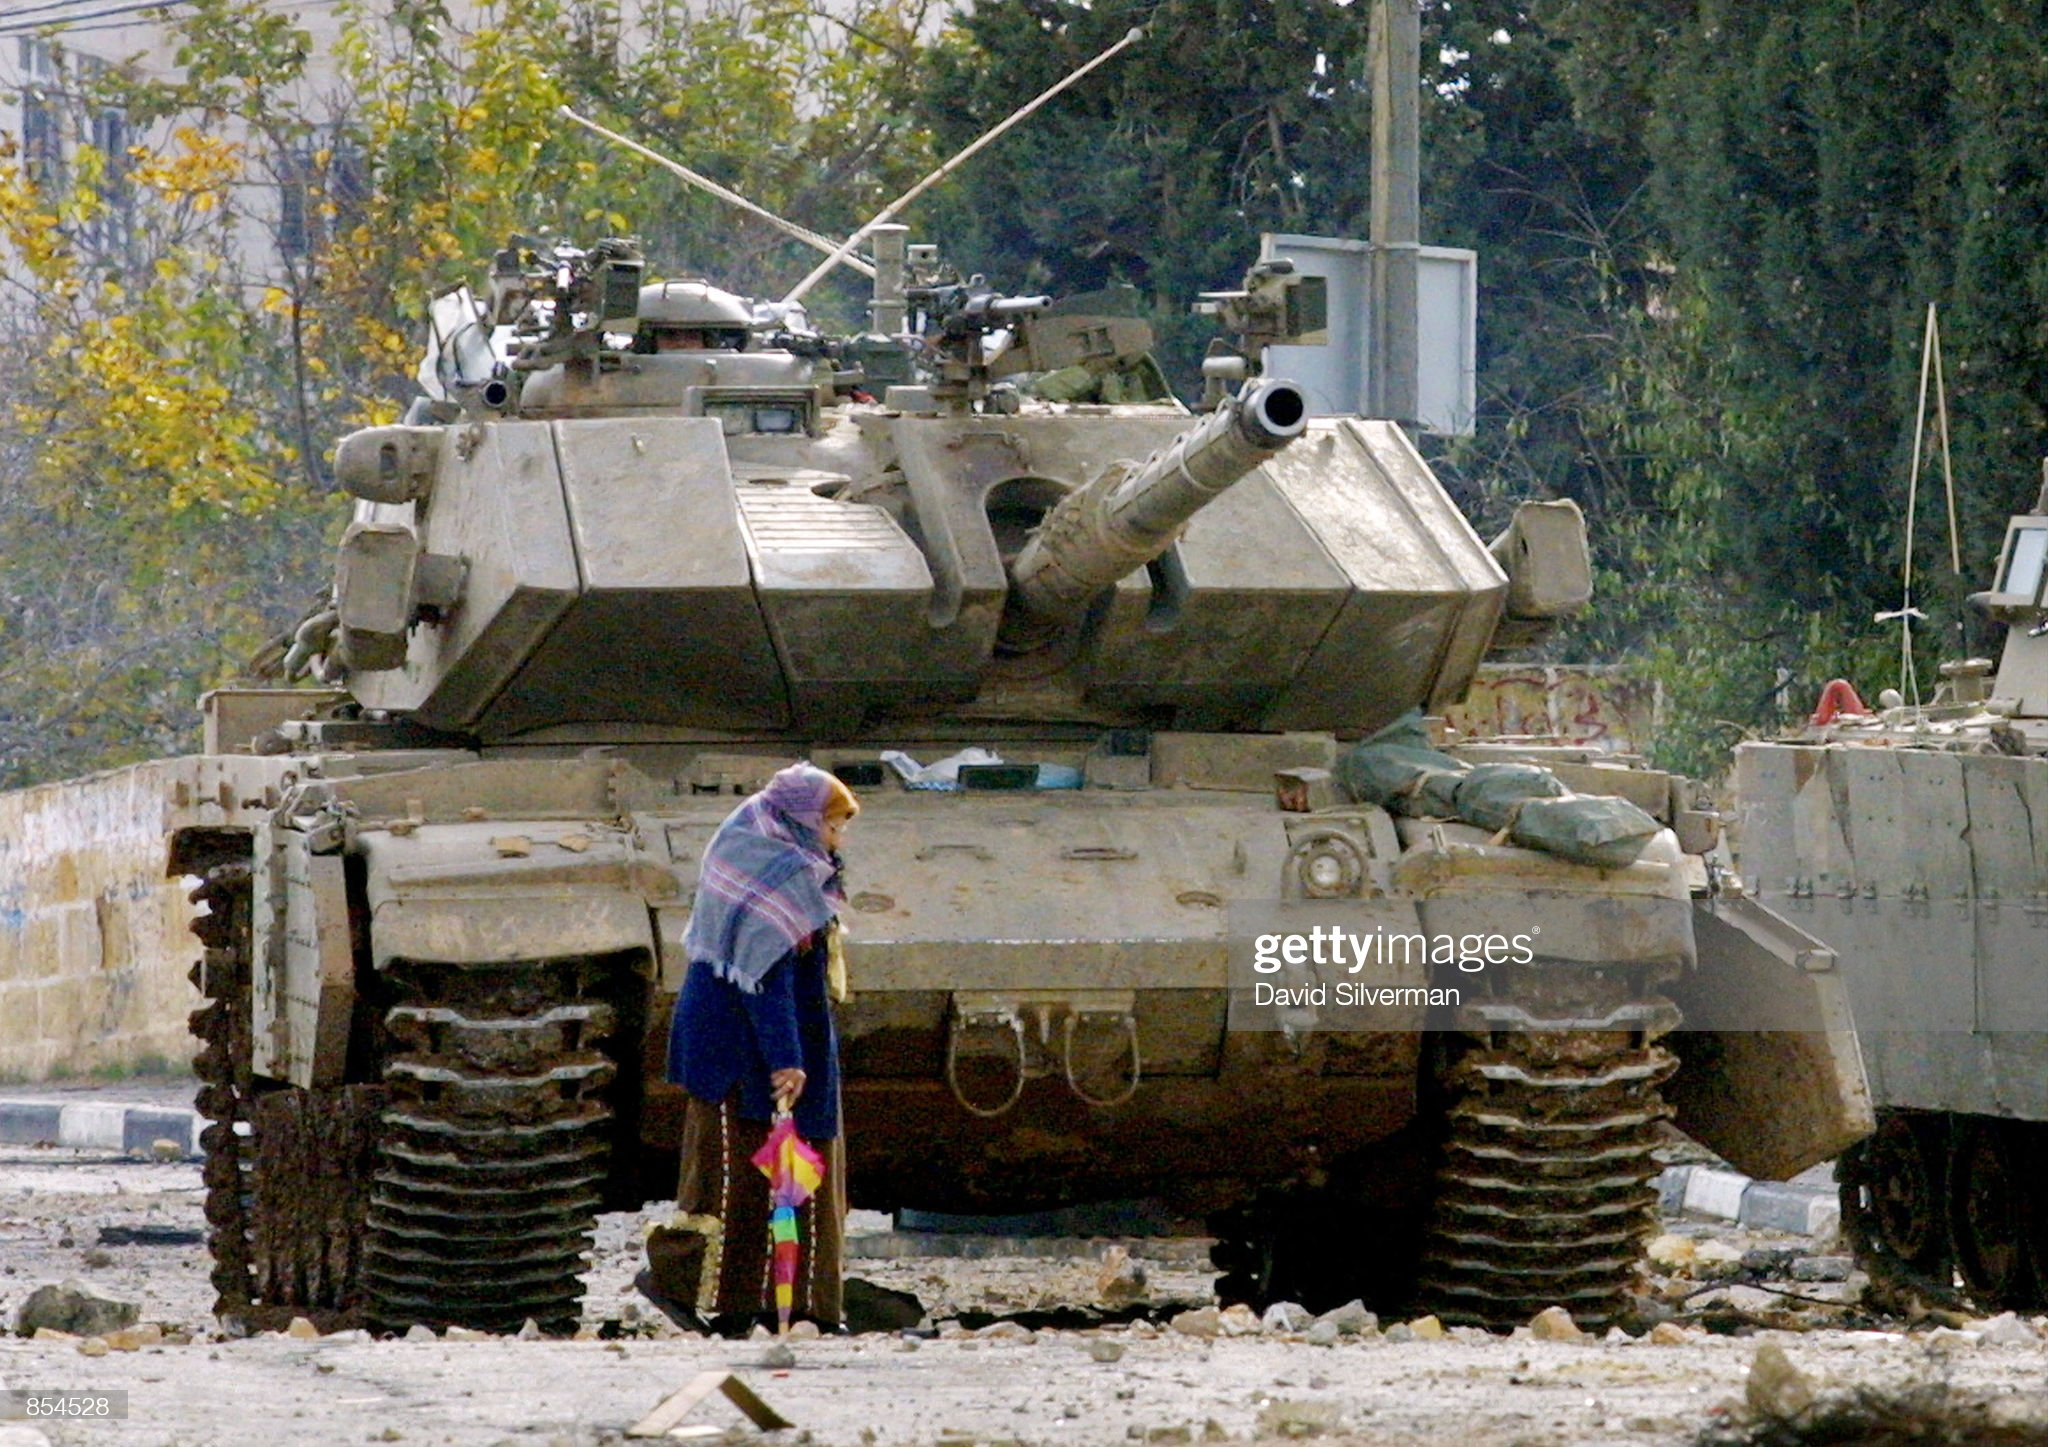 https://media.gettyimages.com/photos/an-elderly-palestinian-woman-makes-her-way-home-past-an-israeli-tank-picture-id854528?s=2048x2048